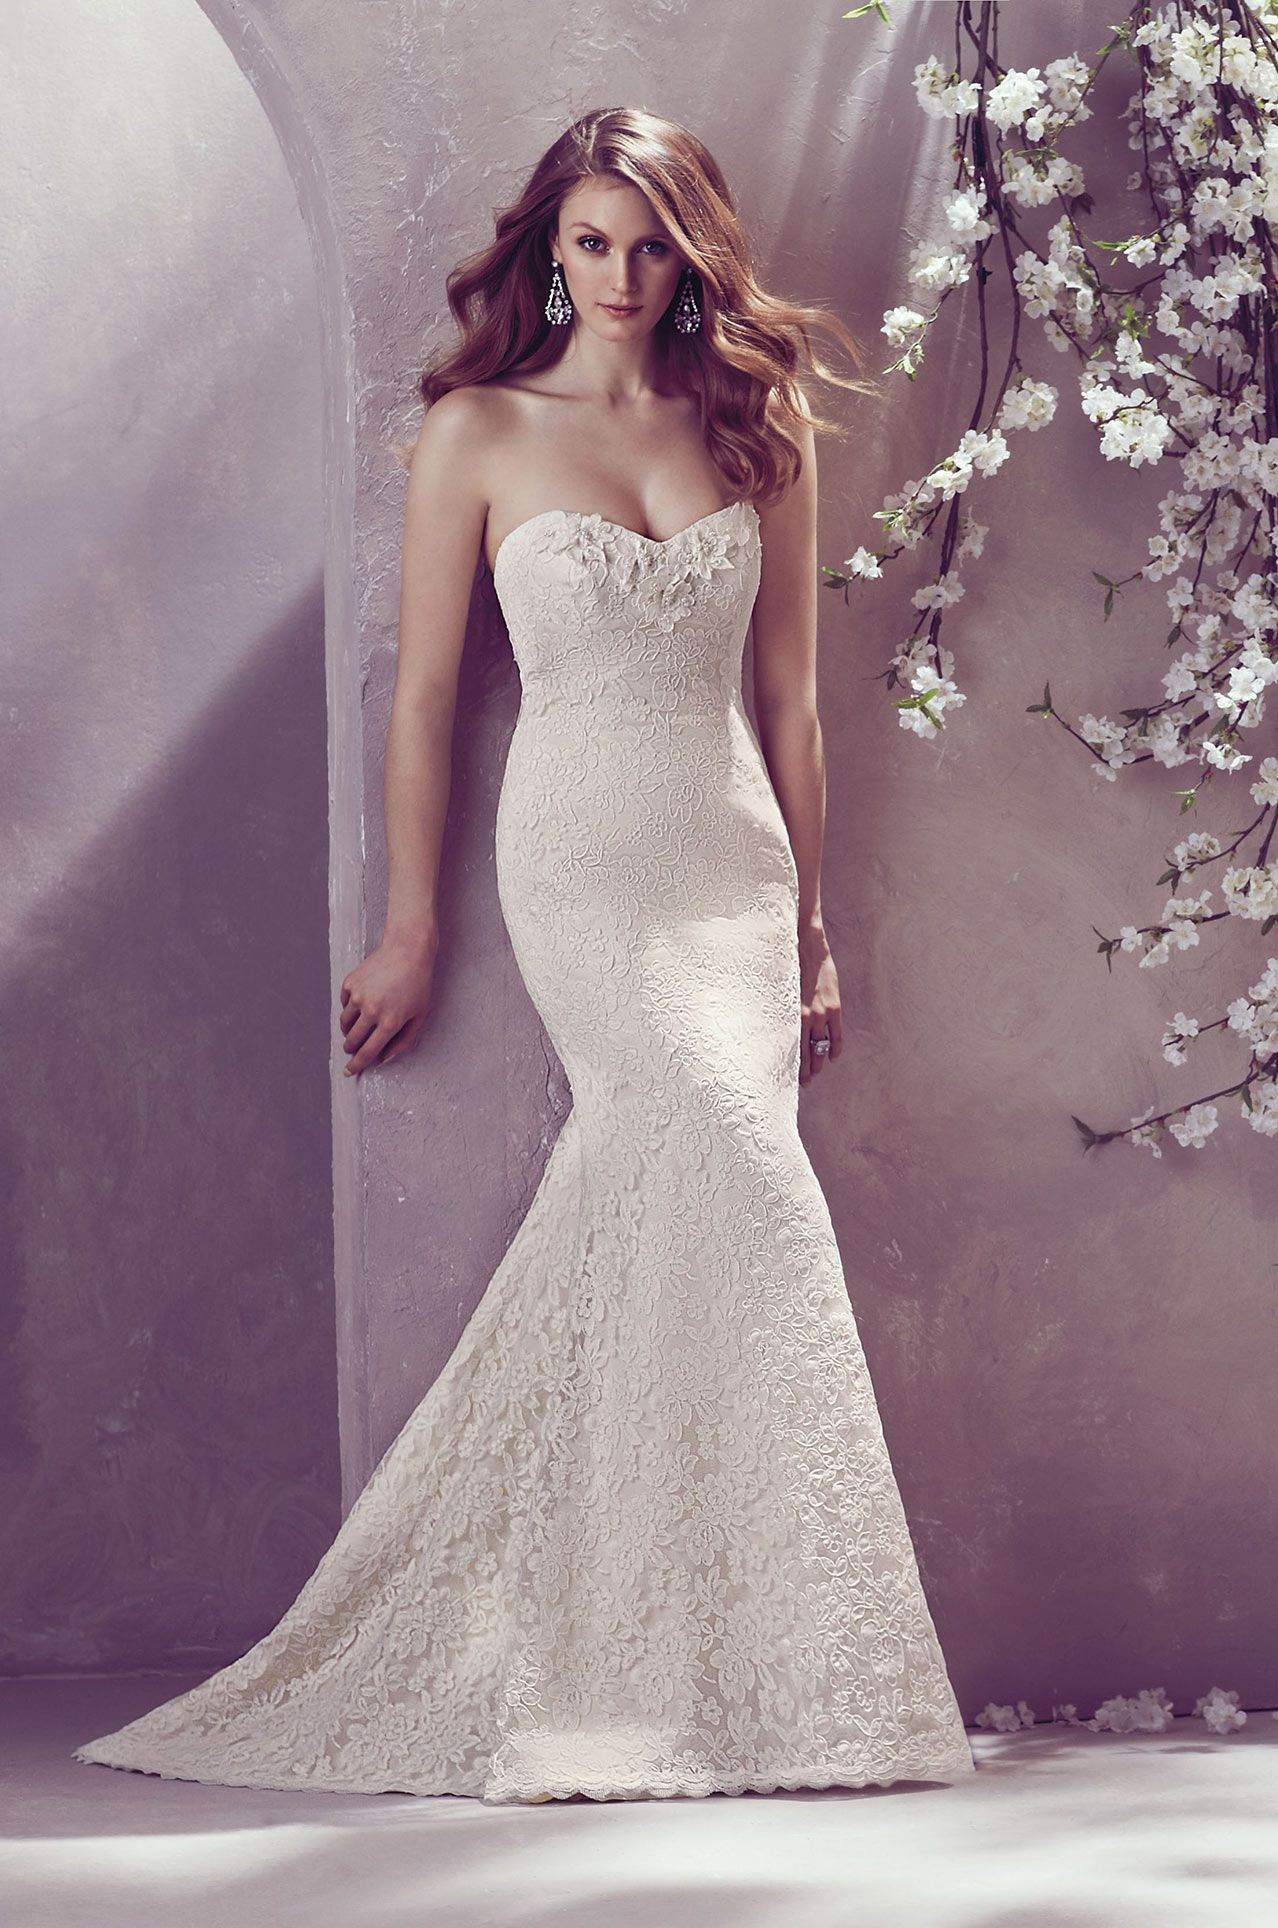 Lace dress styles for wedding  Raised Lace Wedding Dress  Style   Wedding  Pinterest